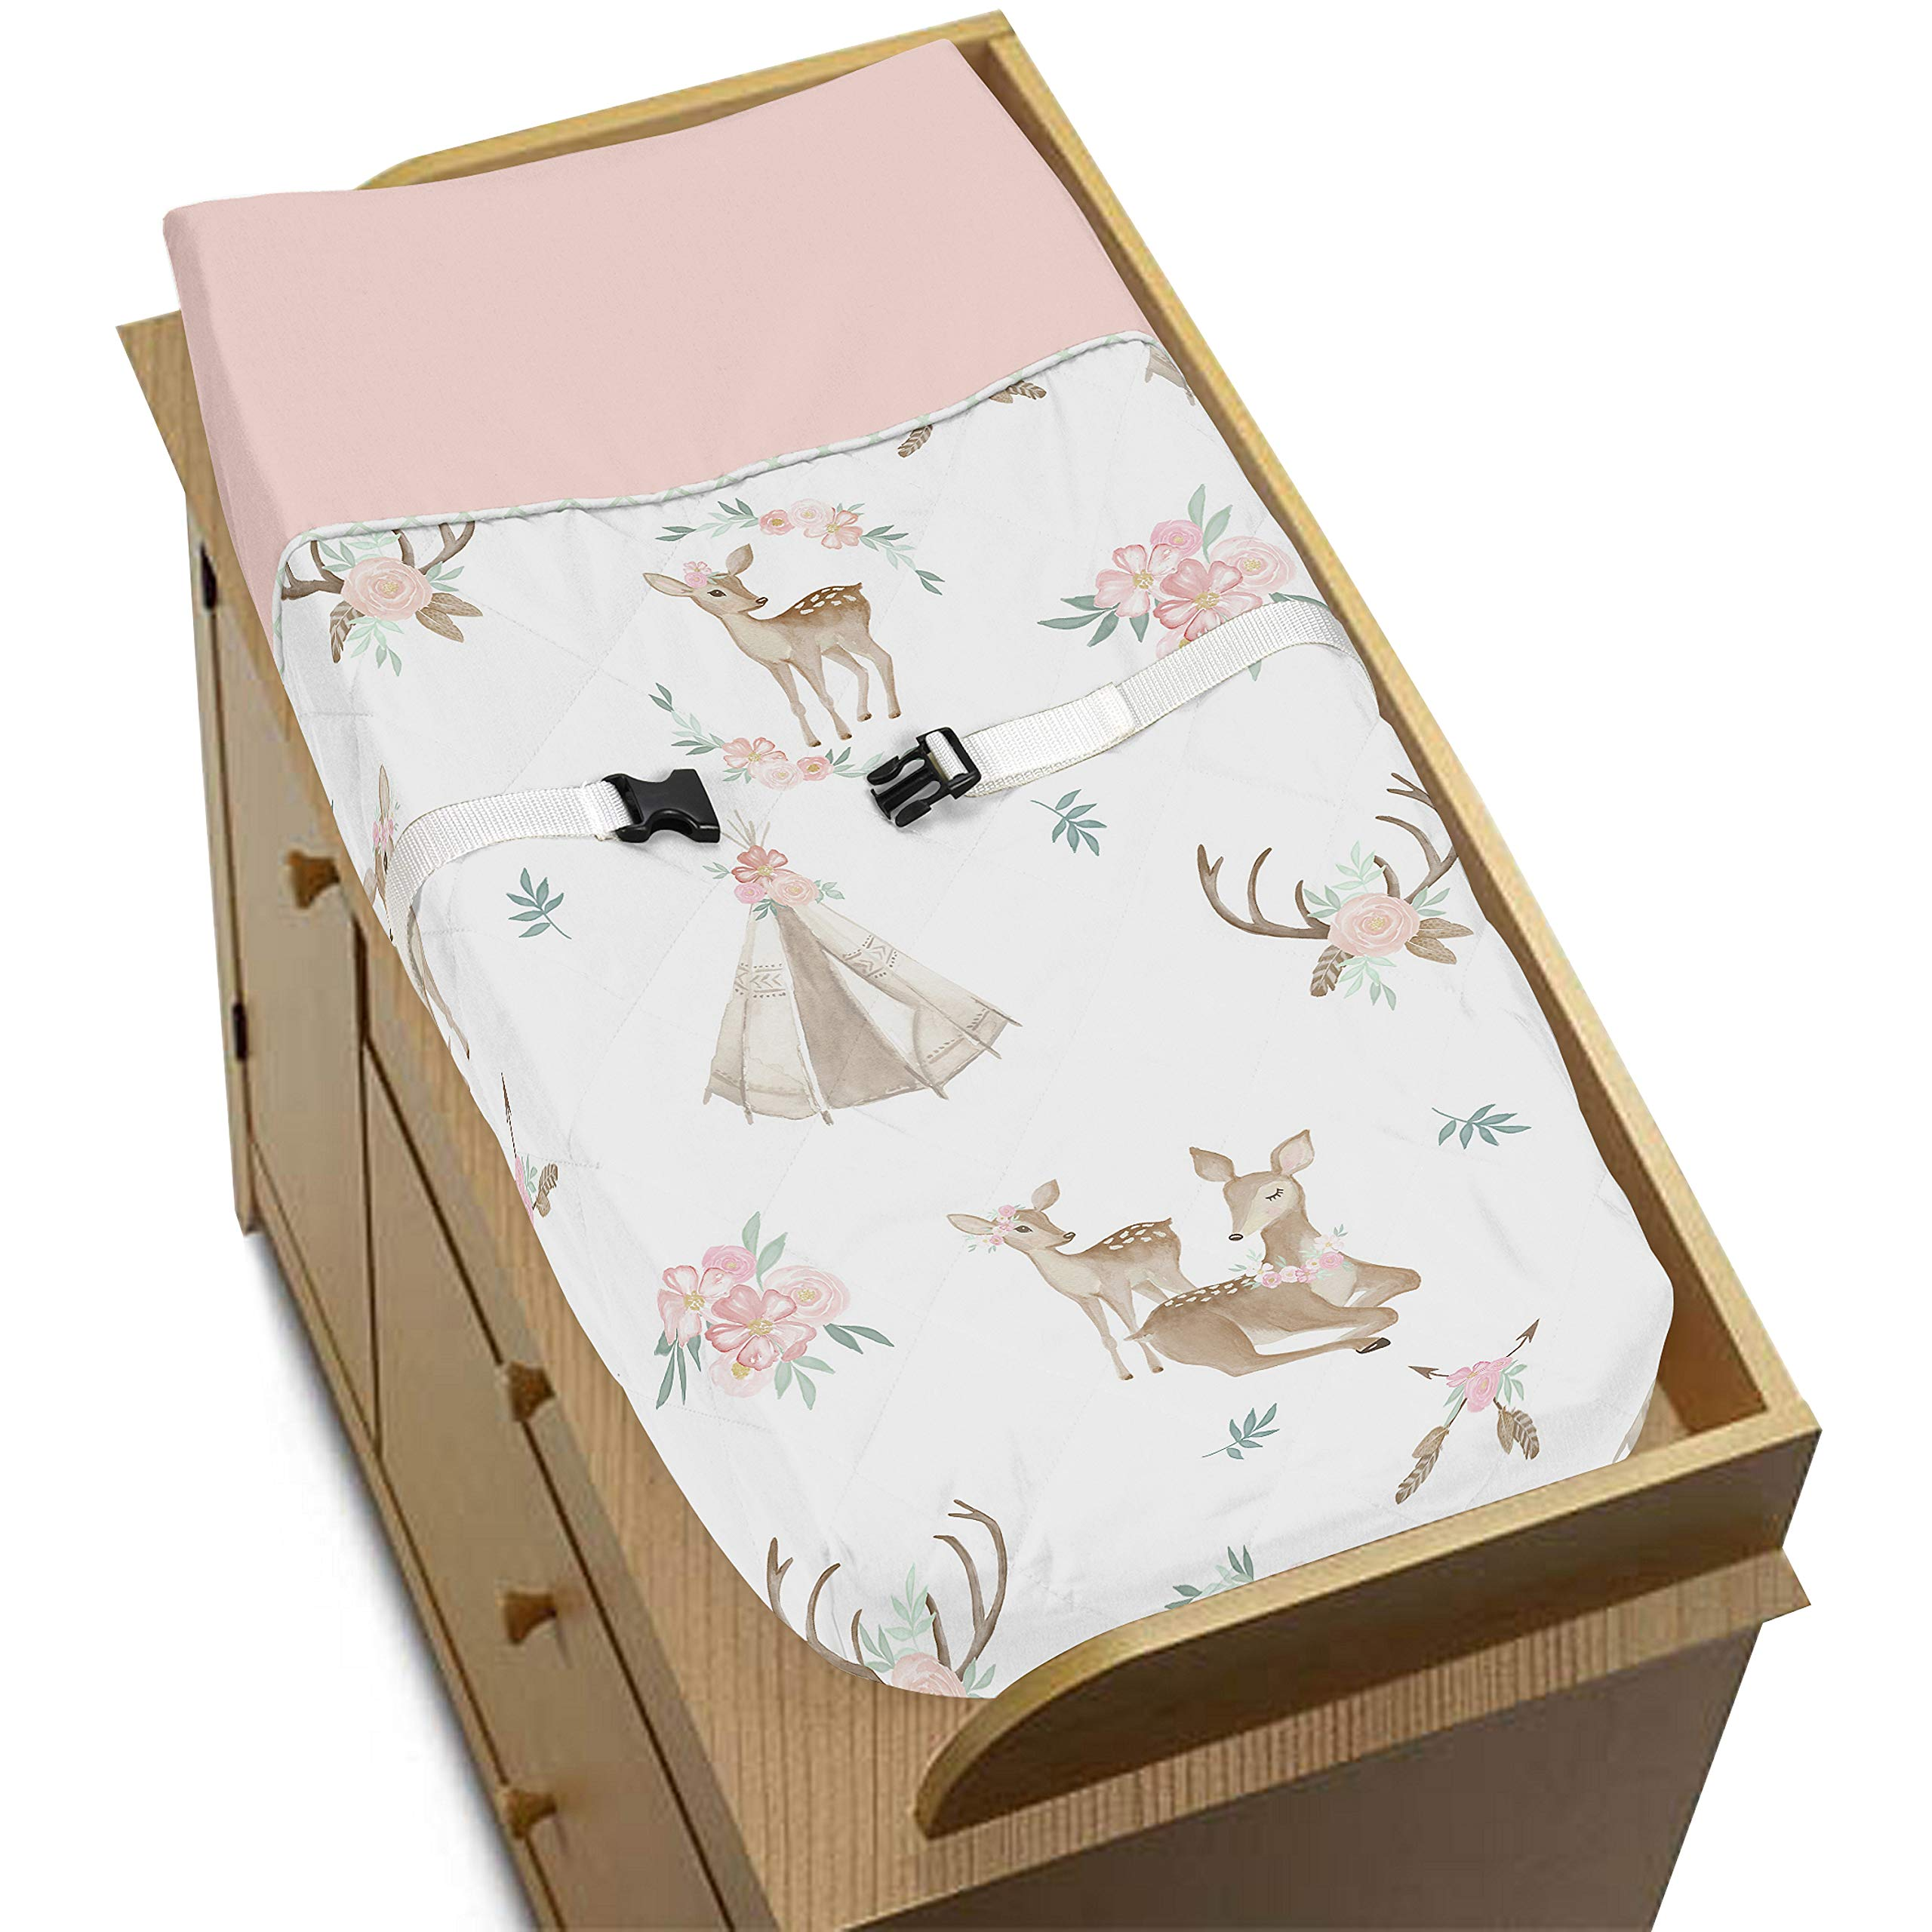 Sweet Jojo Designs Blush Pink, Mint Green and White Boho Changing Pad Cover for Woodland Deer Floral Collection by Sweet Jojo Designs